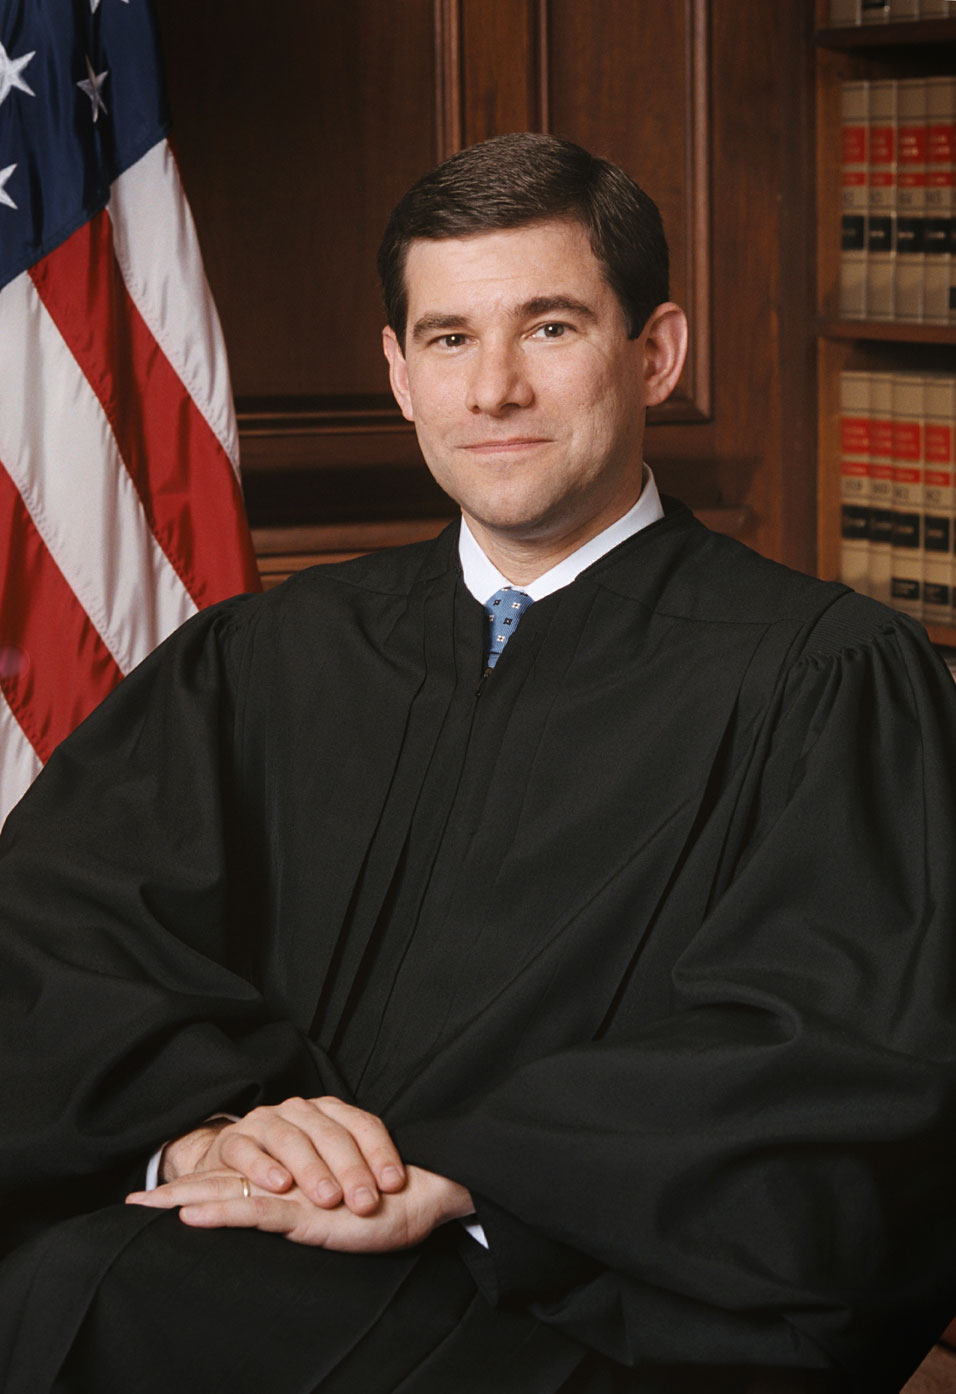 portrait_of_us_federal_judge_william_h-_pryor_jr